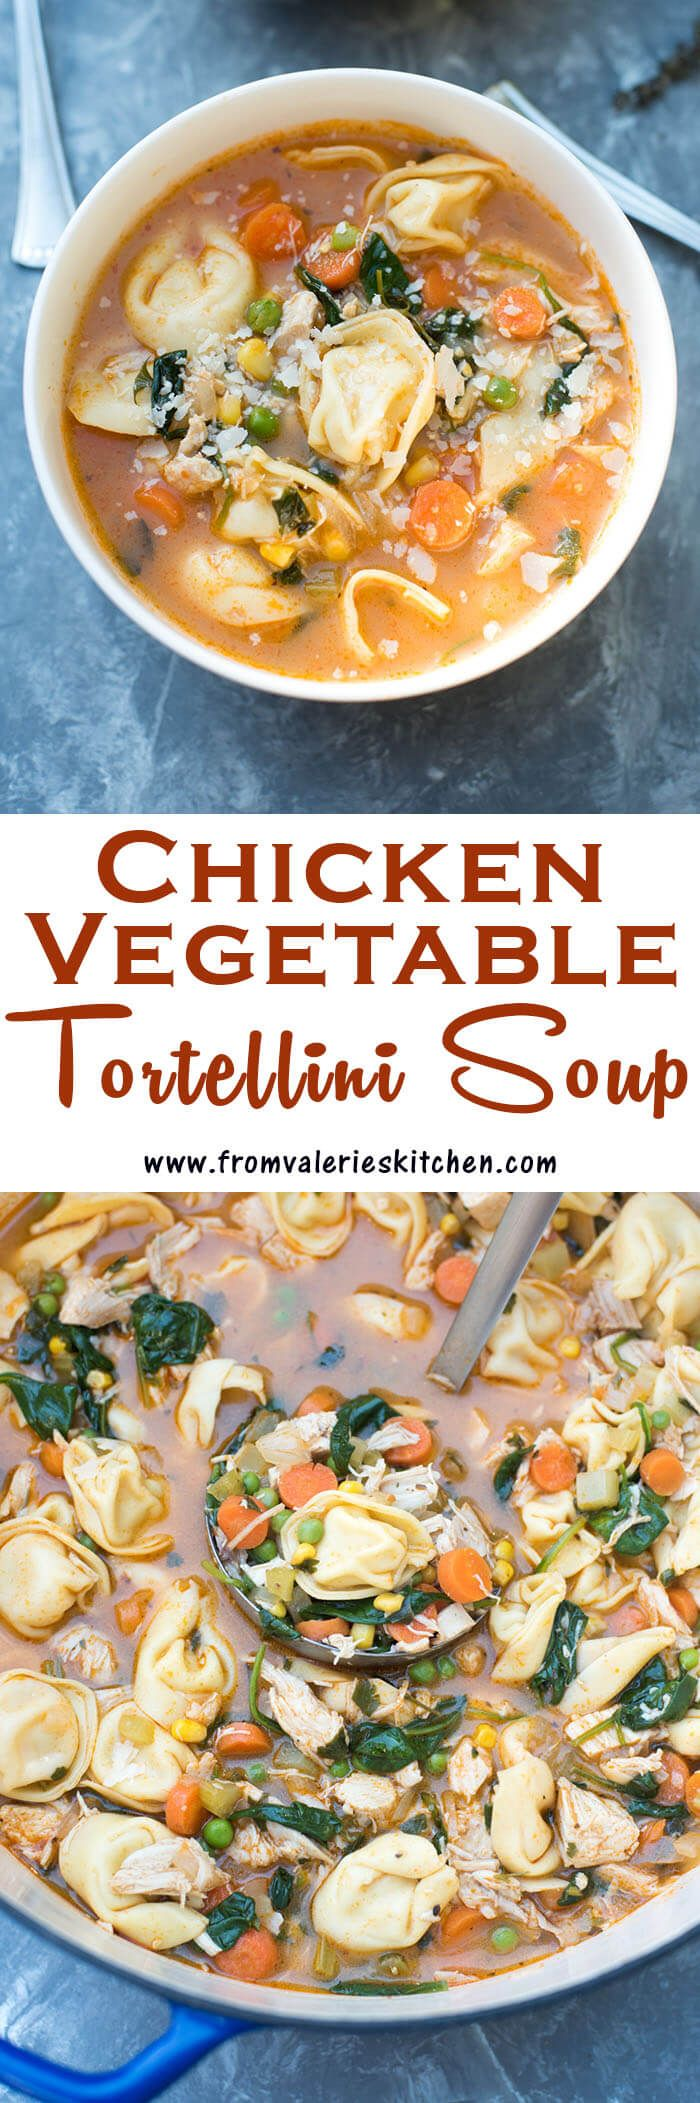 This Chicken Vegetable Tortellini Soup is made easy with a rotisserie chicken and store-bought cheese tortellini. A wholesome, comforting 30-minute meal! ~ http://www.fromvalerieskitchen.com